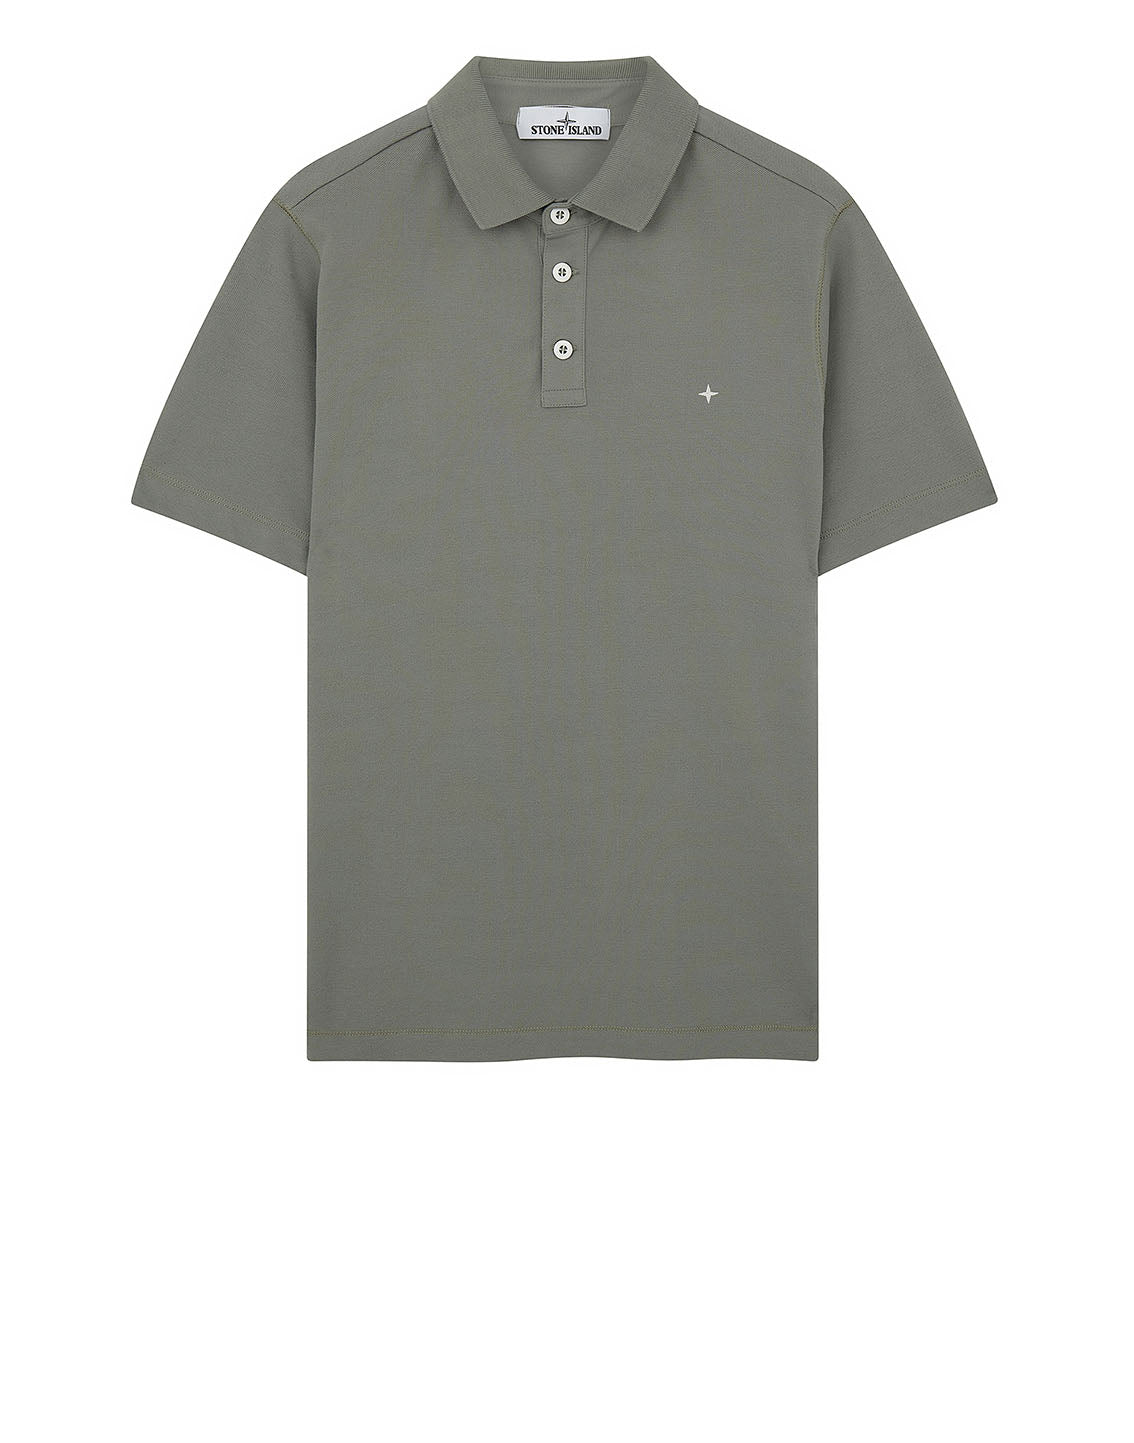 20514 Polo Shirt in Sage